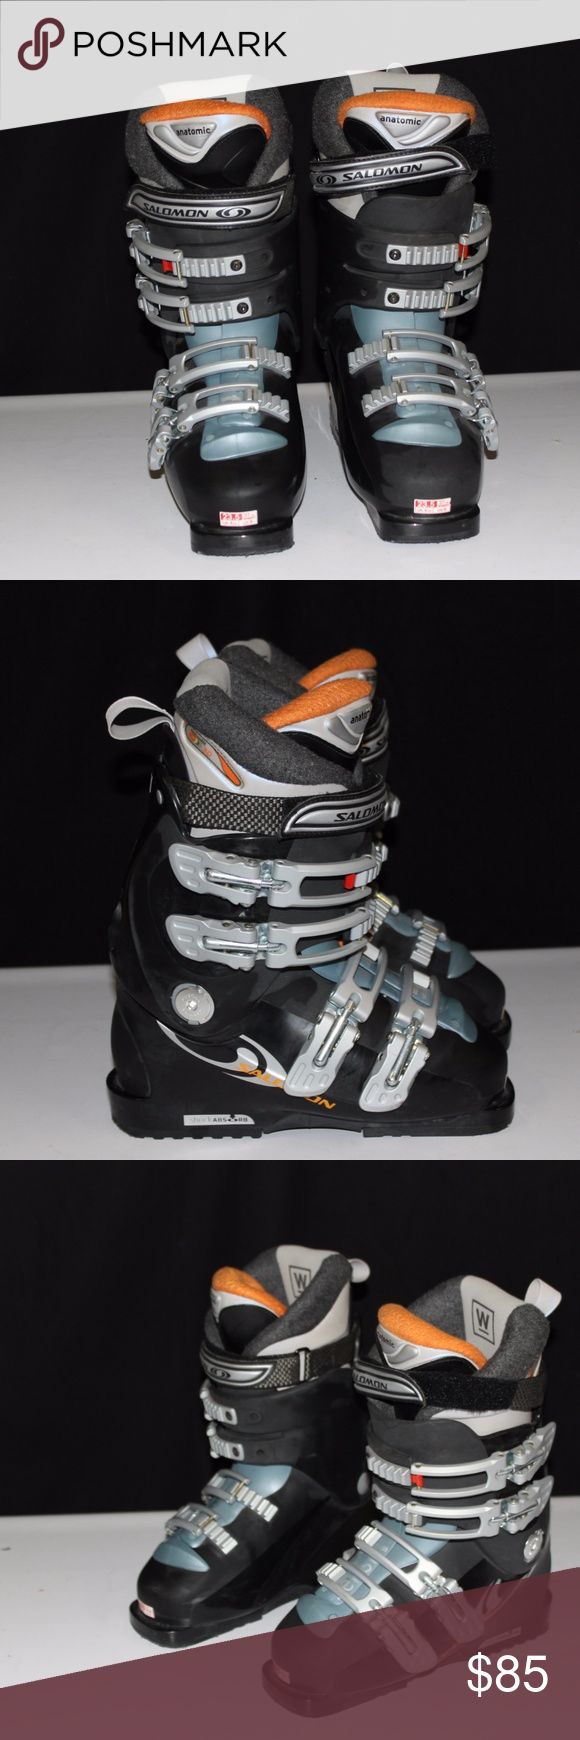 Womens Salomon Charcoal Blue Anatomic Ski Boots 6 Womens Salomon Charcoal Blue Anatomic Ski Boots Size 6   Good, pre-owned condition. Some signs of wear, no flaws   Thanks for looking!  BA7L1 Salomon Shoes Winter & Rain Boots